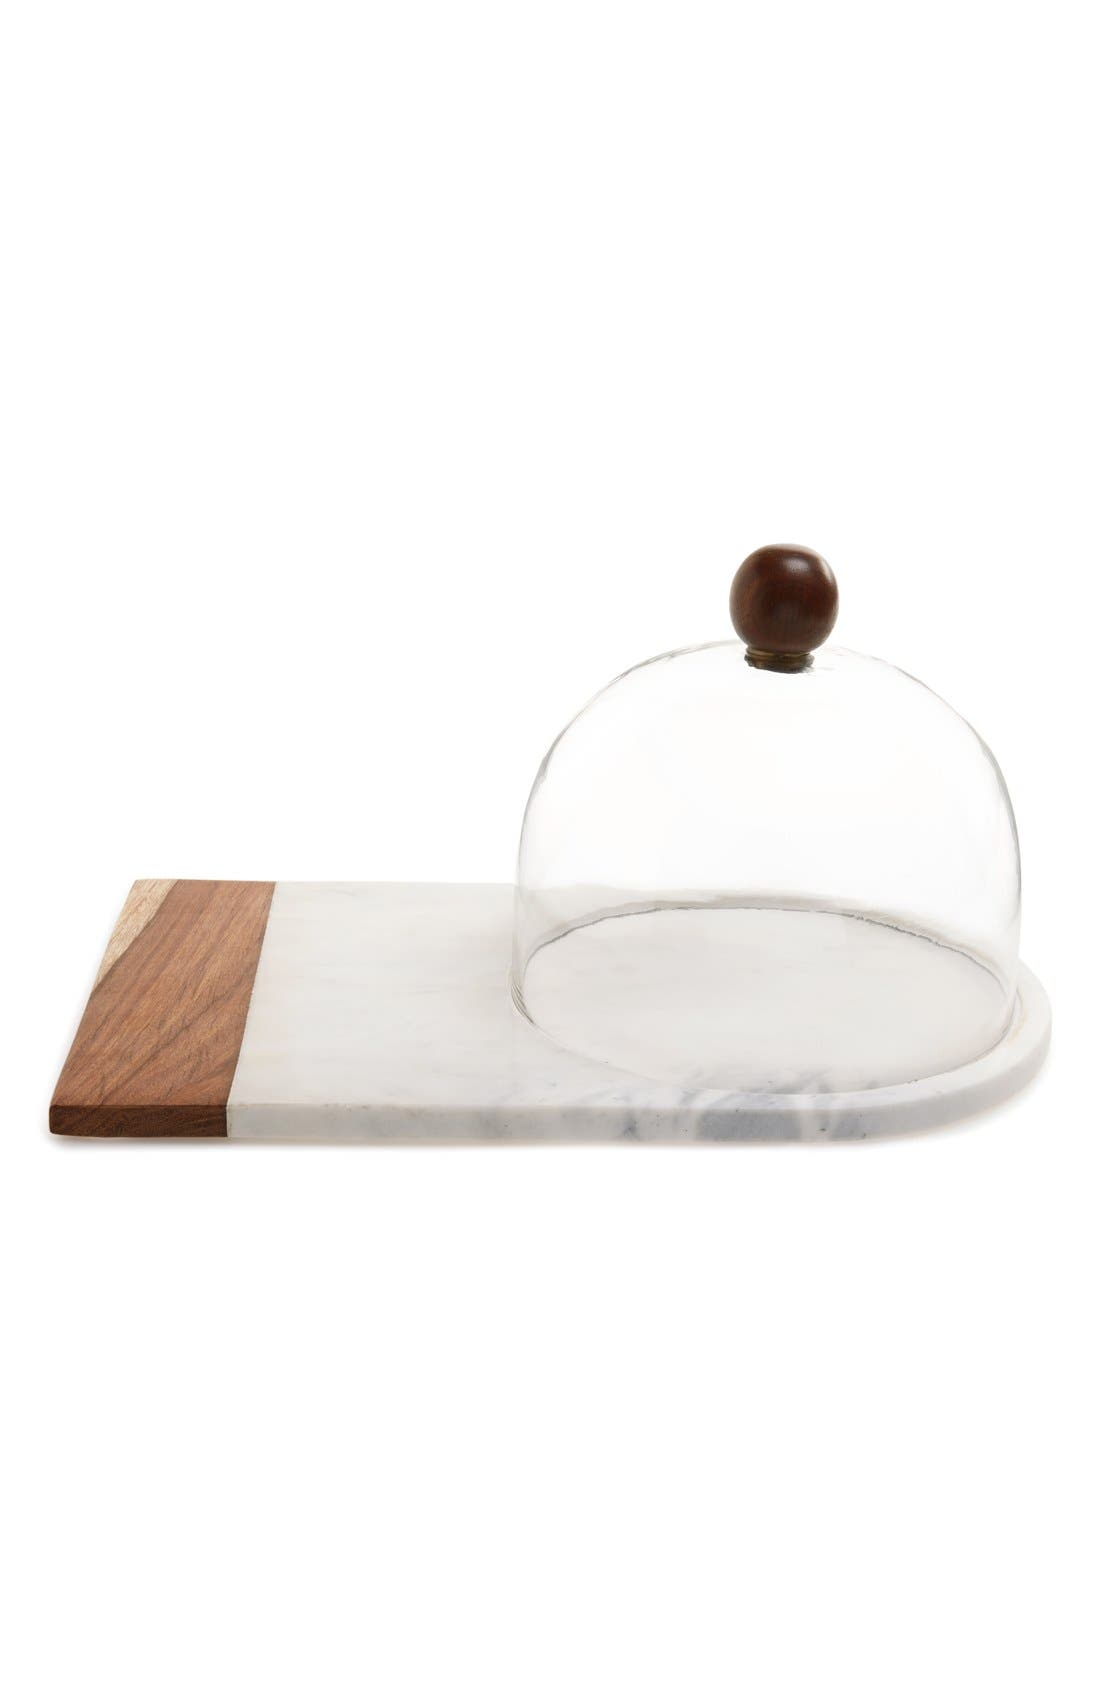 Alternate Image 1 Selected - Thirstystone Marble & Wood Serving Platter